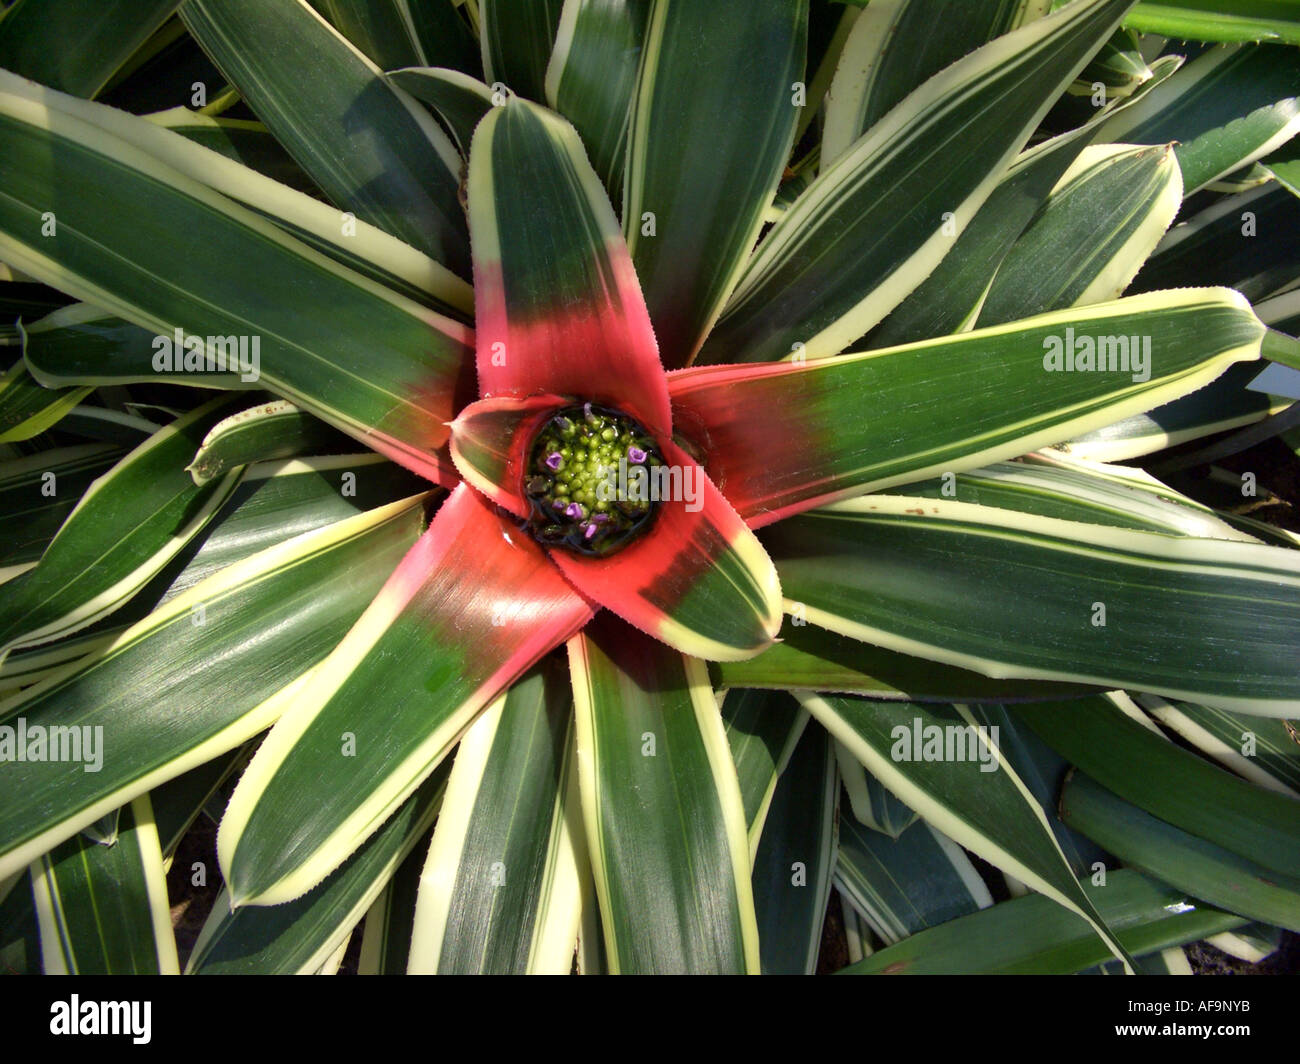 Neoregelia carolinae (Neoregelia carolinae Tricolor), top view at blooming plant Stock Photo